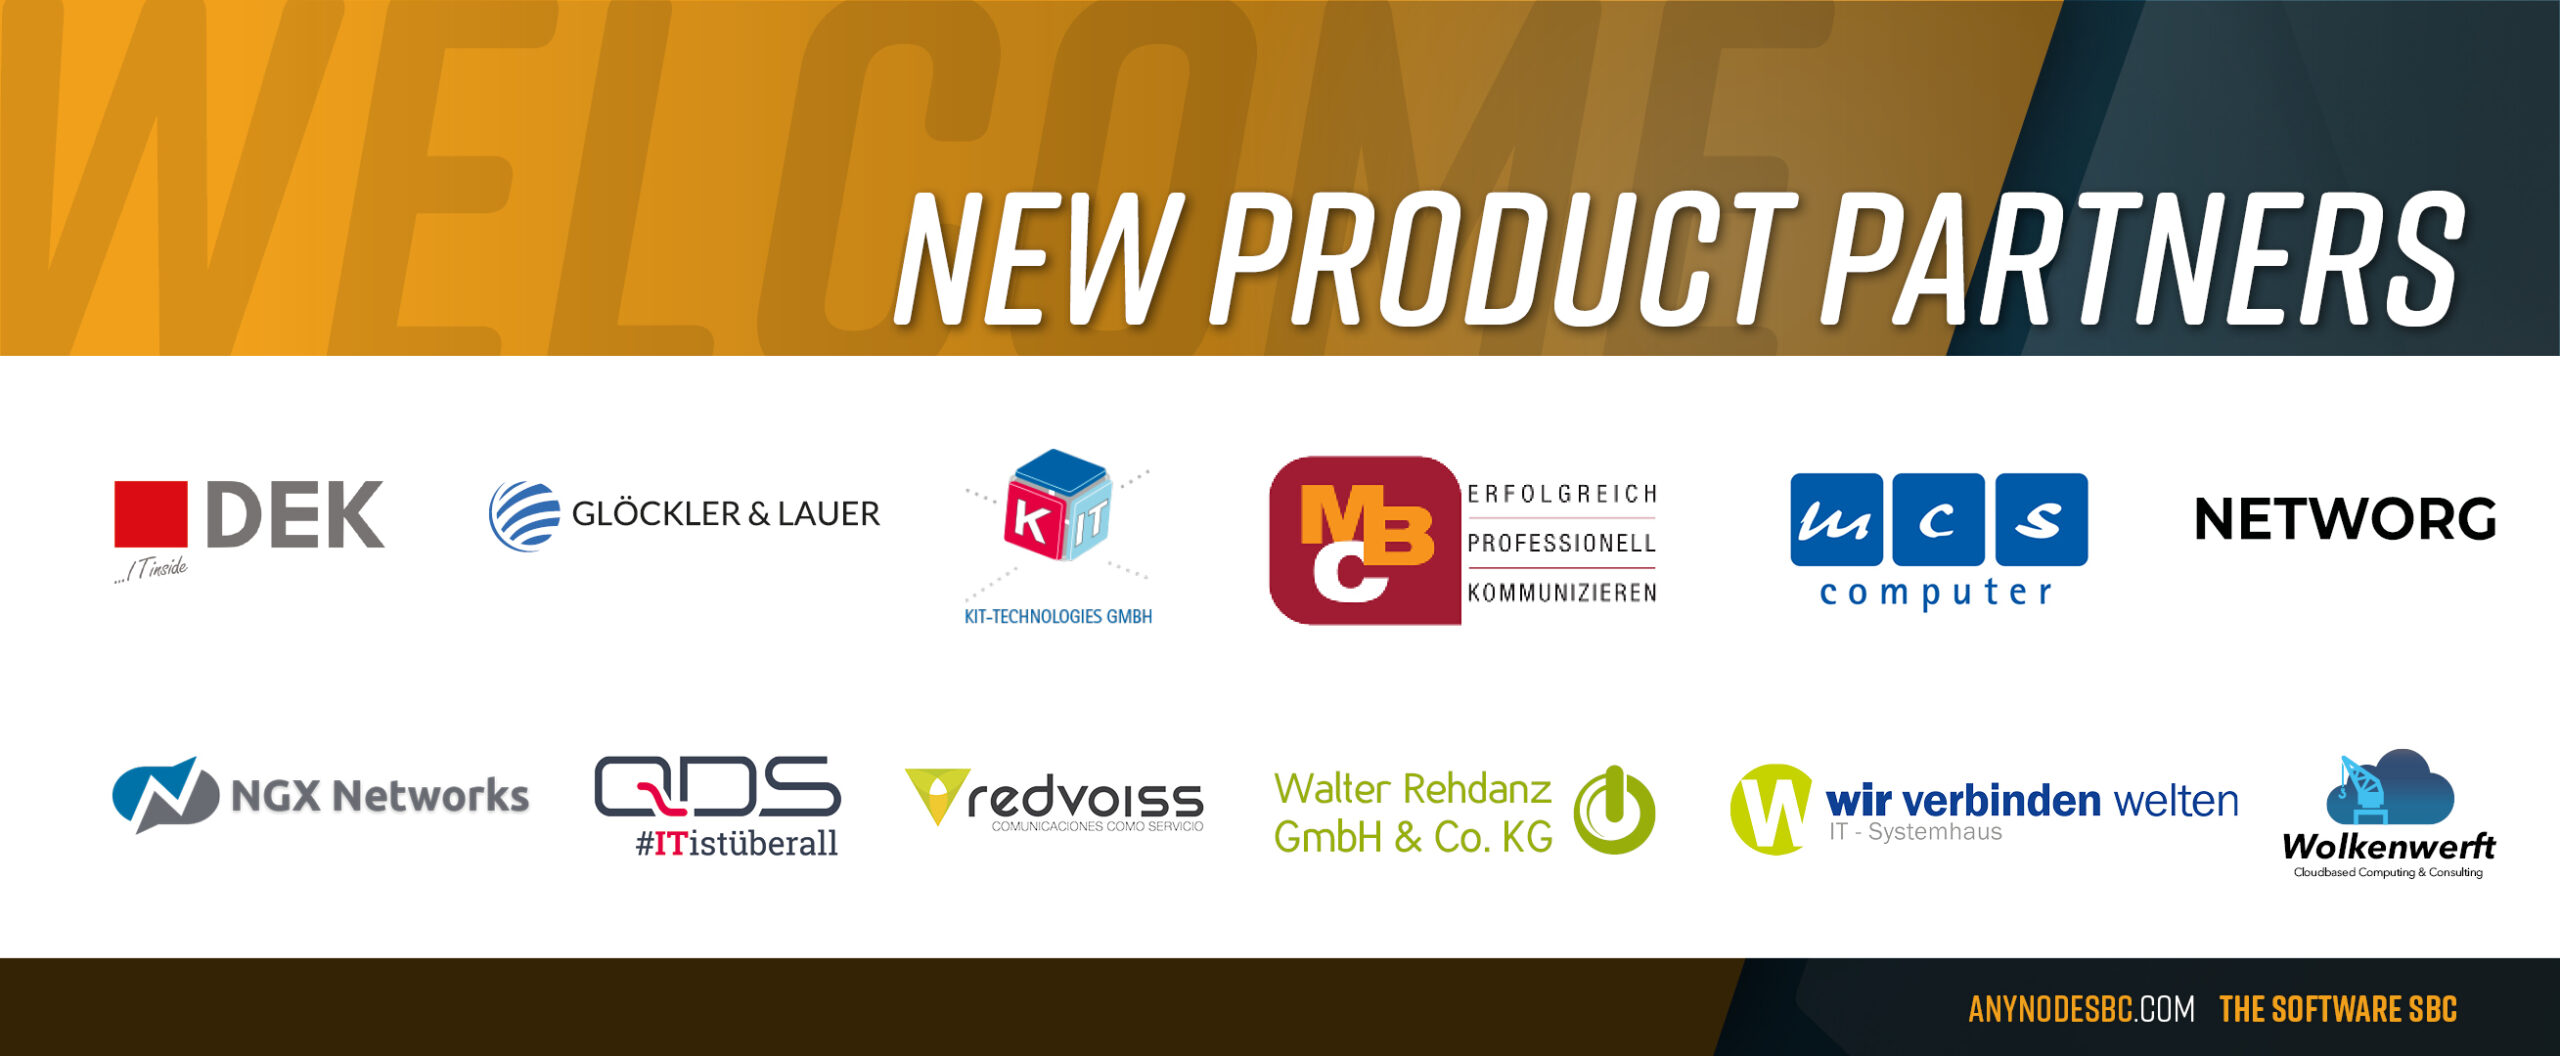 New anynode Product Partners in November 2020!